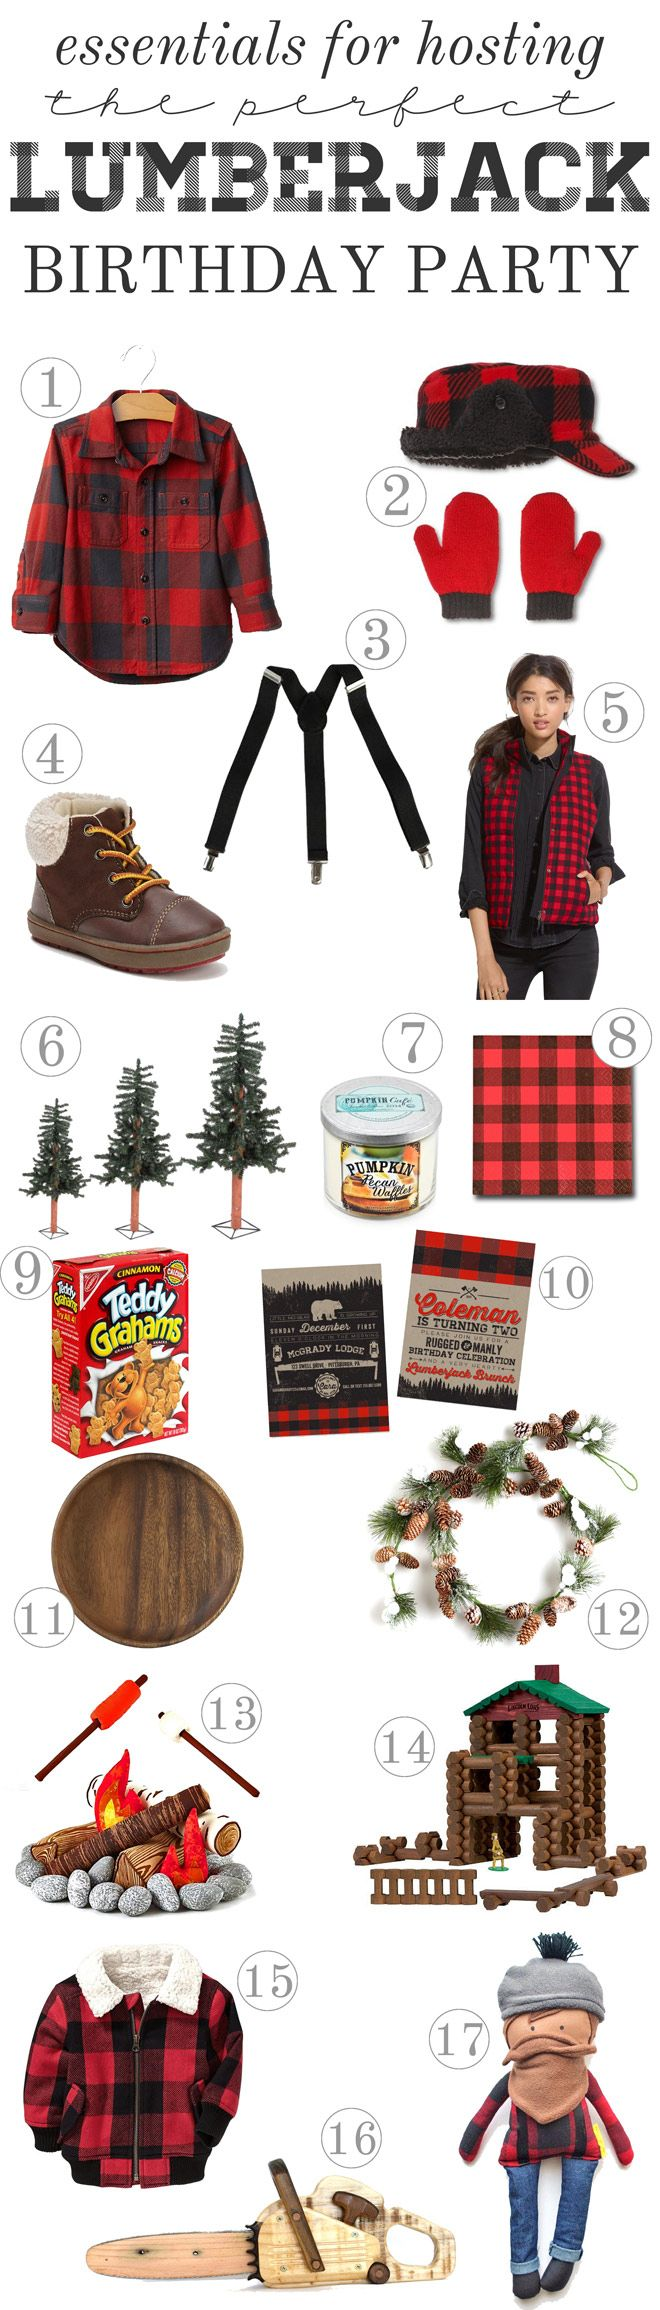 Lumberjack clipart baby lumberjack. Essentials for a mandly